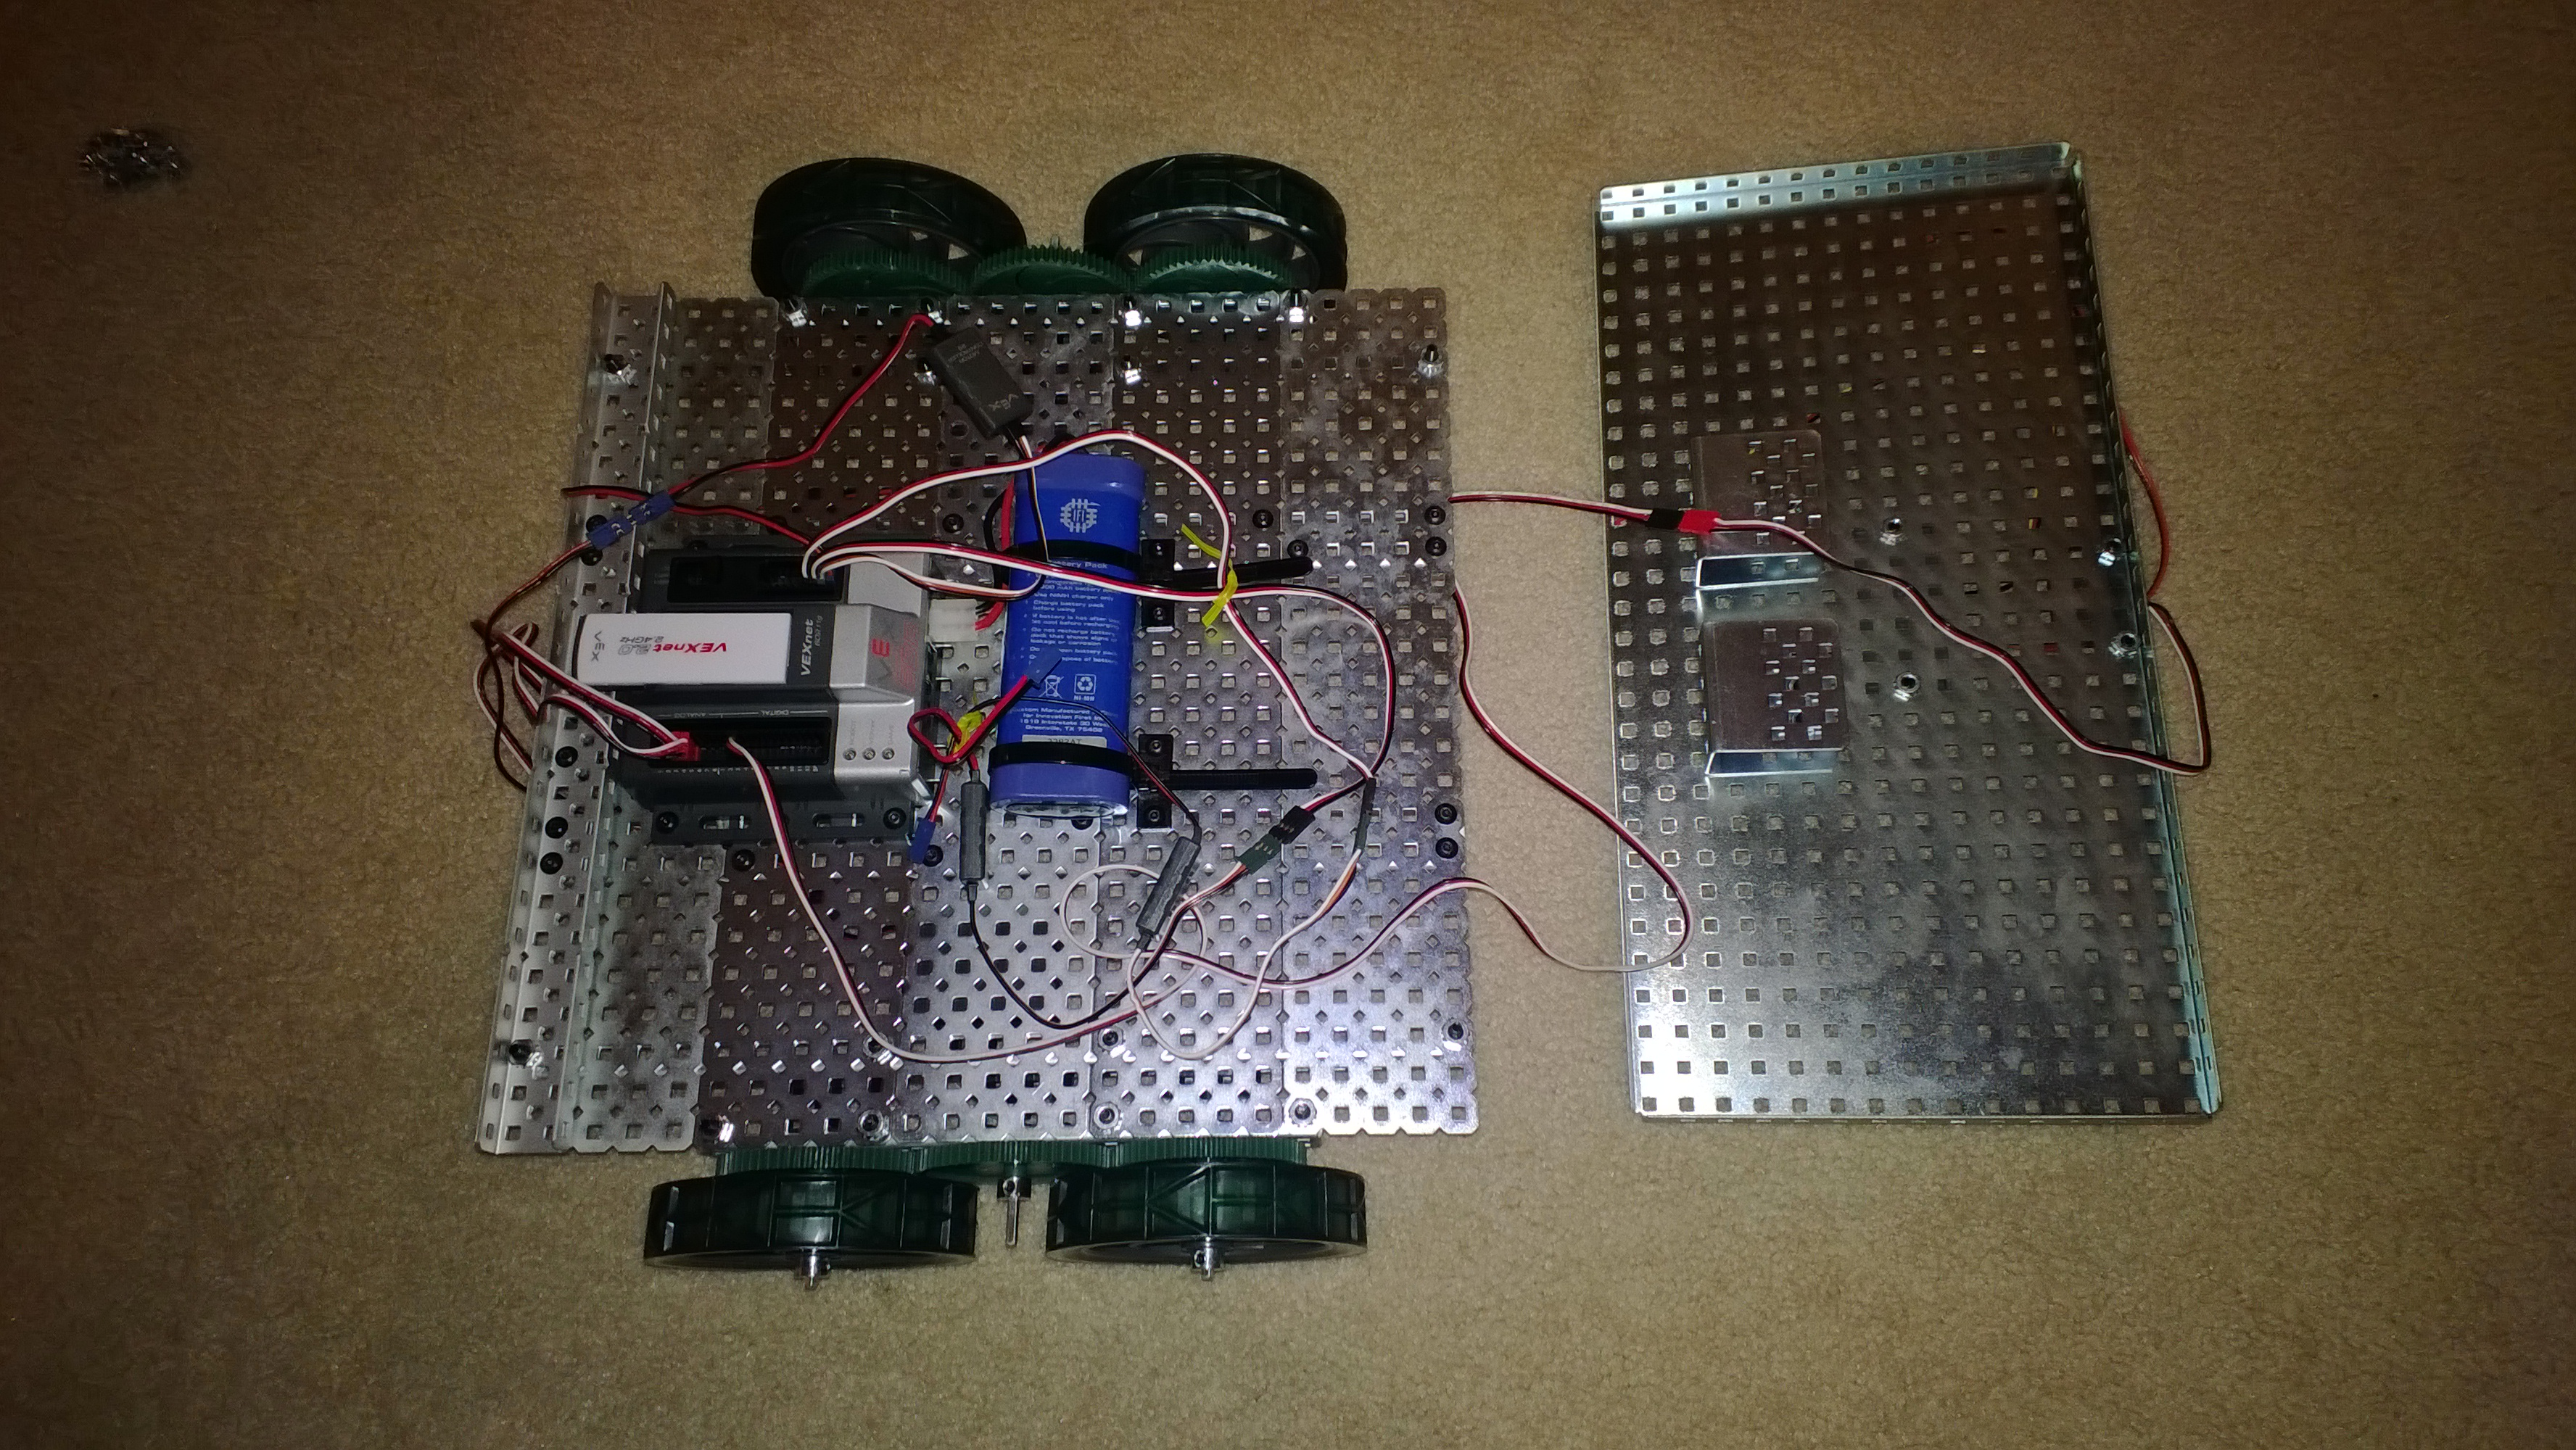 VEX Robot with Cortex